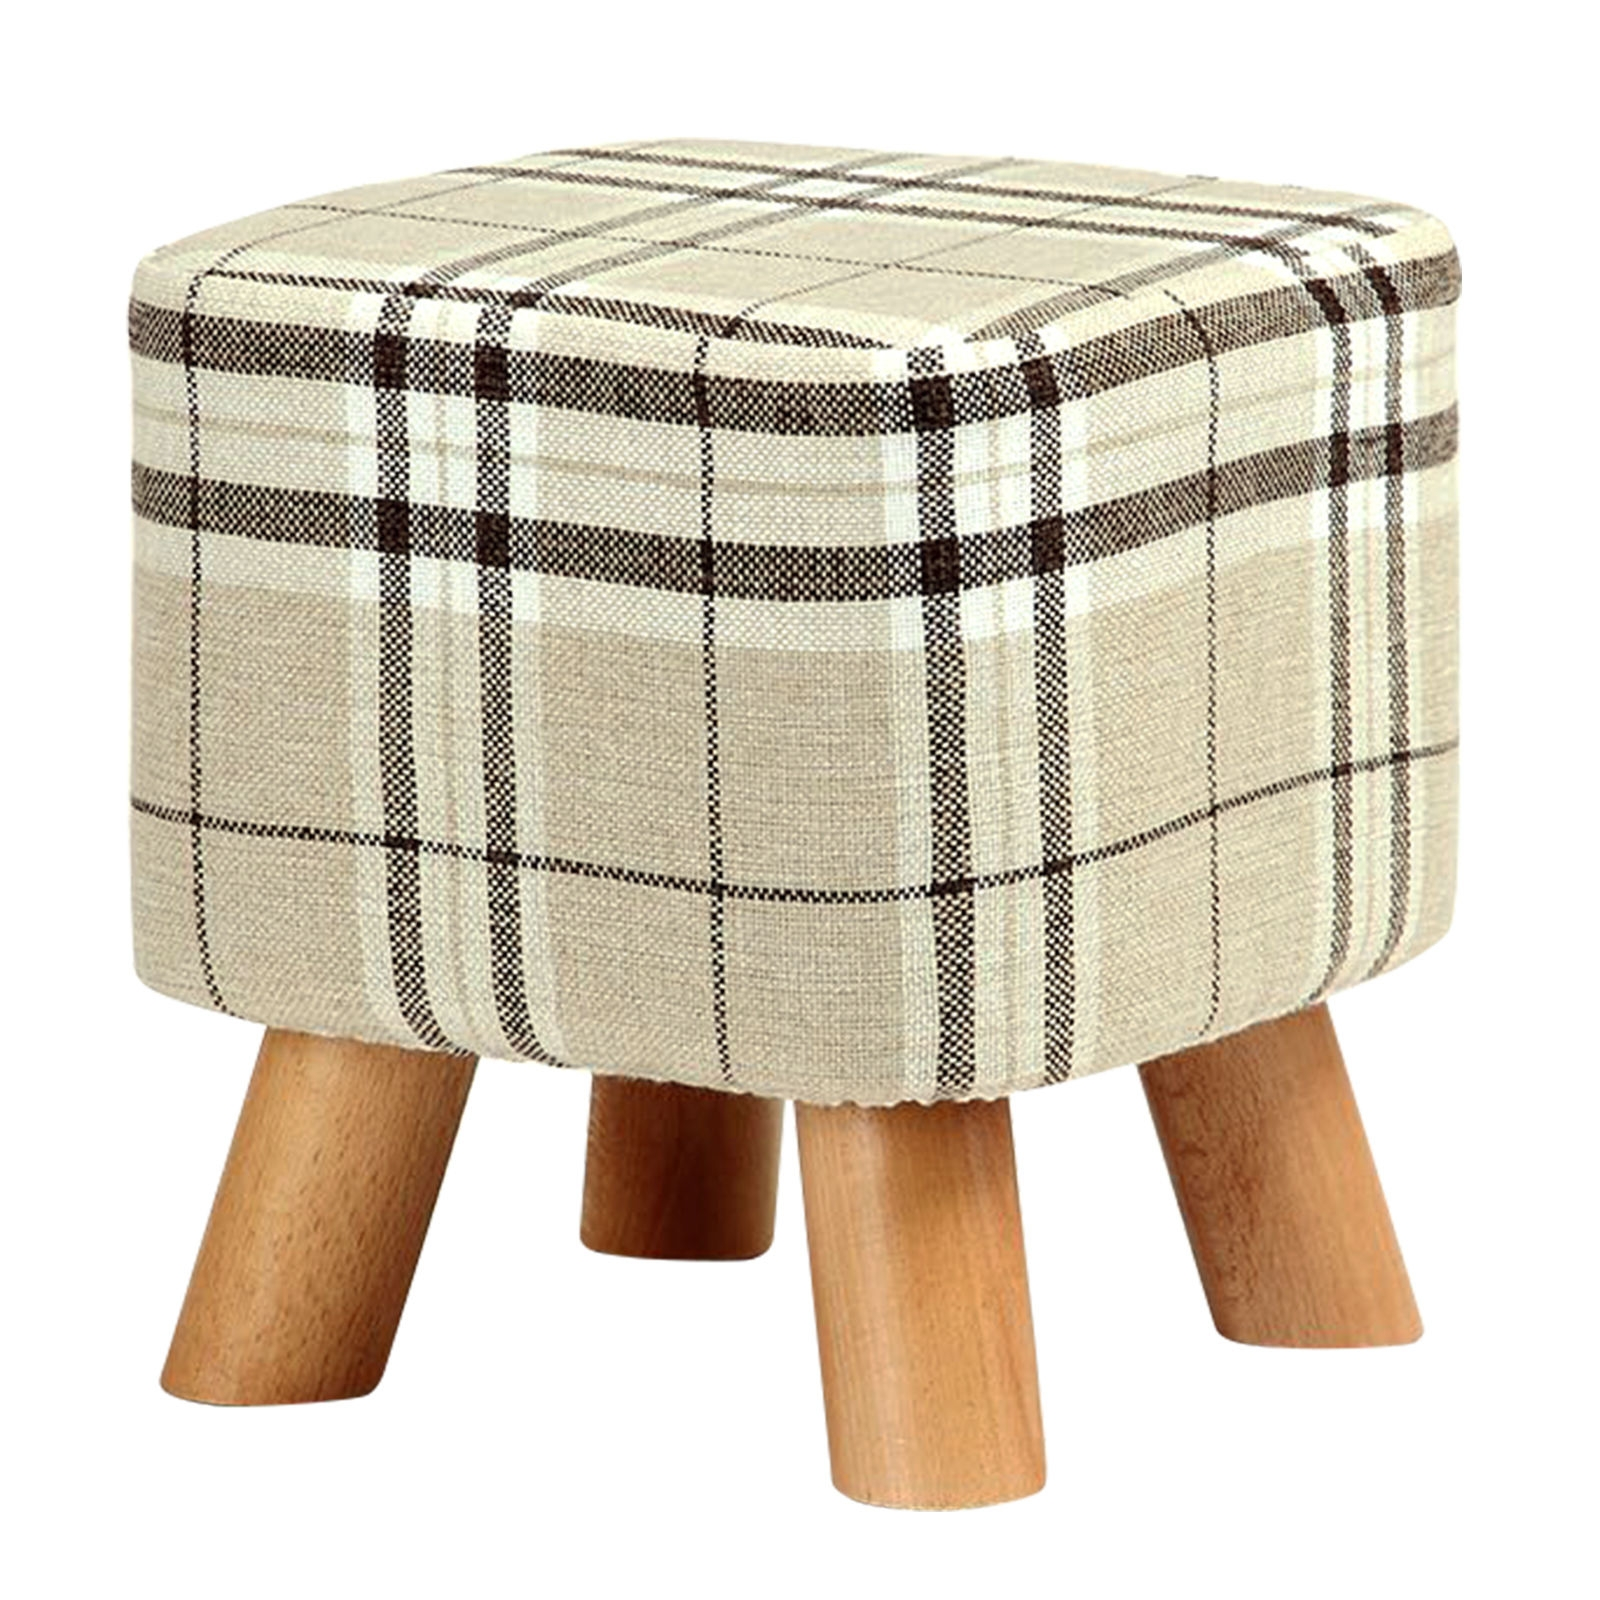 Online Get Cheap Modern Footstools Aliexpress Alibaba Group Intended For Cheap Footstools And Pouffes (Photo 10 of 15)